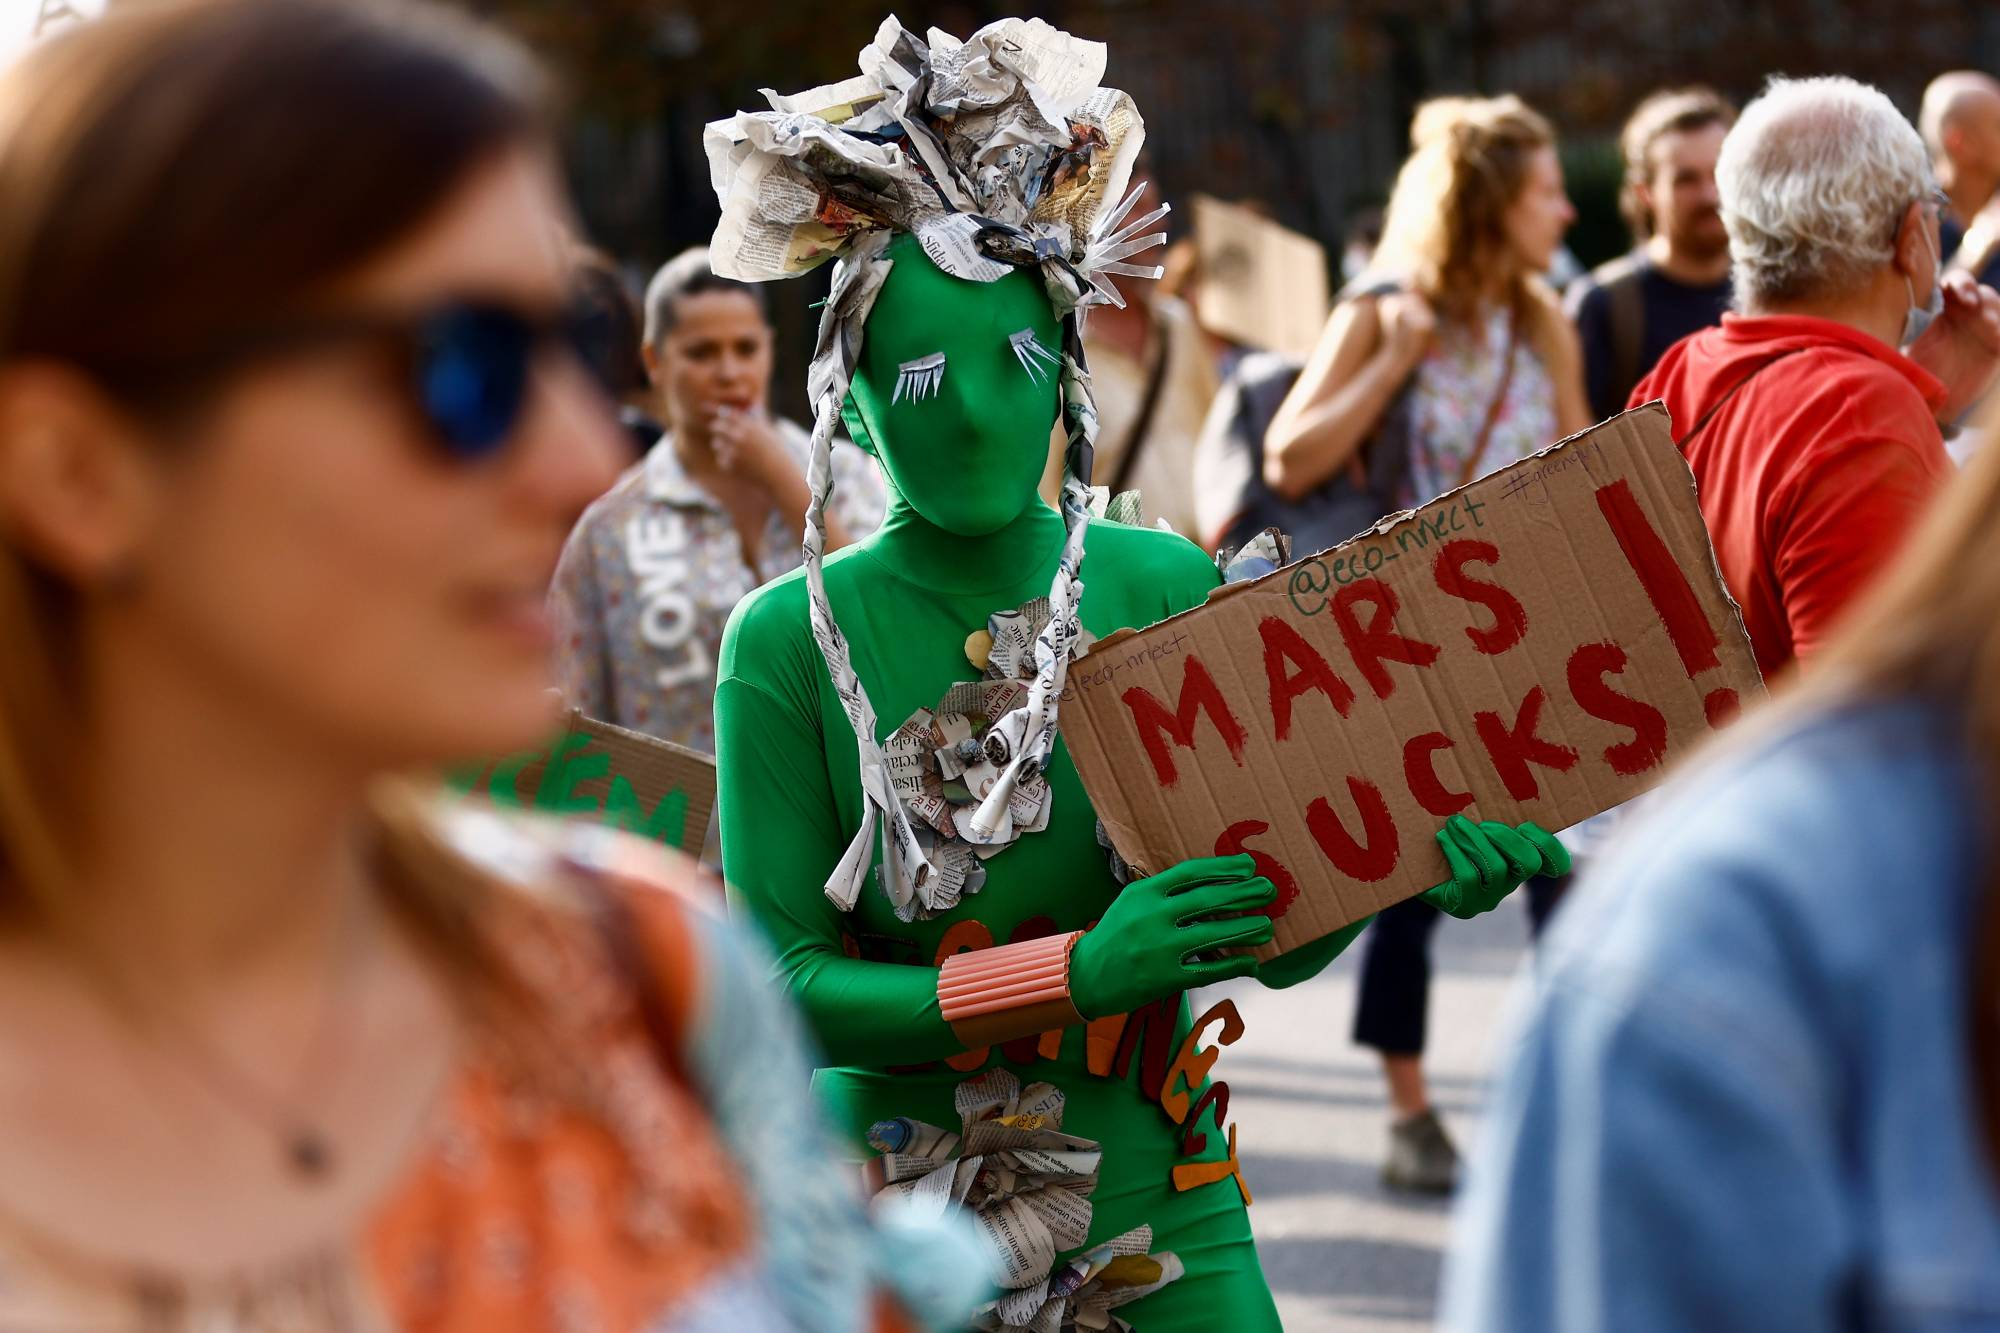 A costumed protester at a climate march in Milan   REUTERS